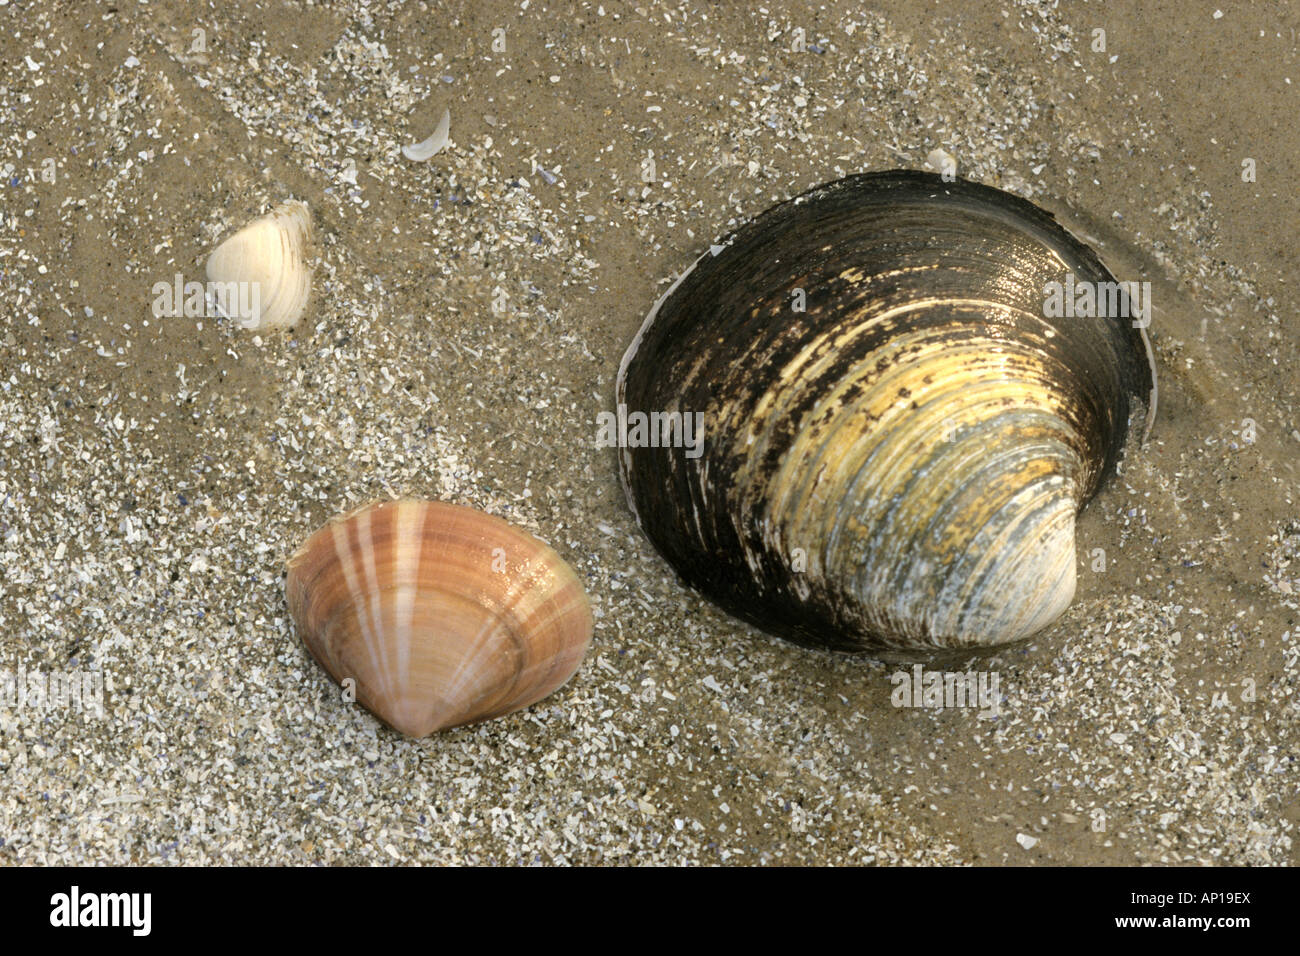 Rayed Trough Clam and Ocean Quahog, Iceland Cypria, Icelandic Cyprine, shells on the beach - Stock Image